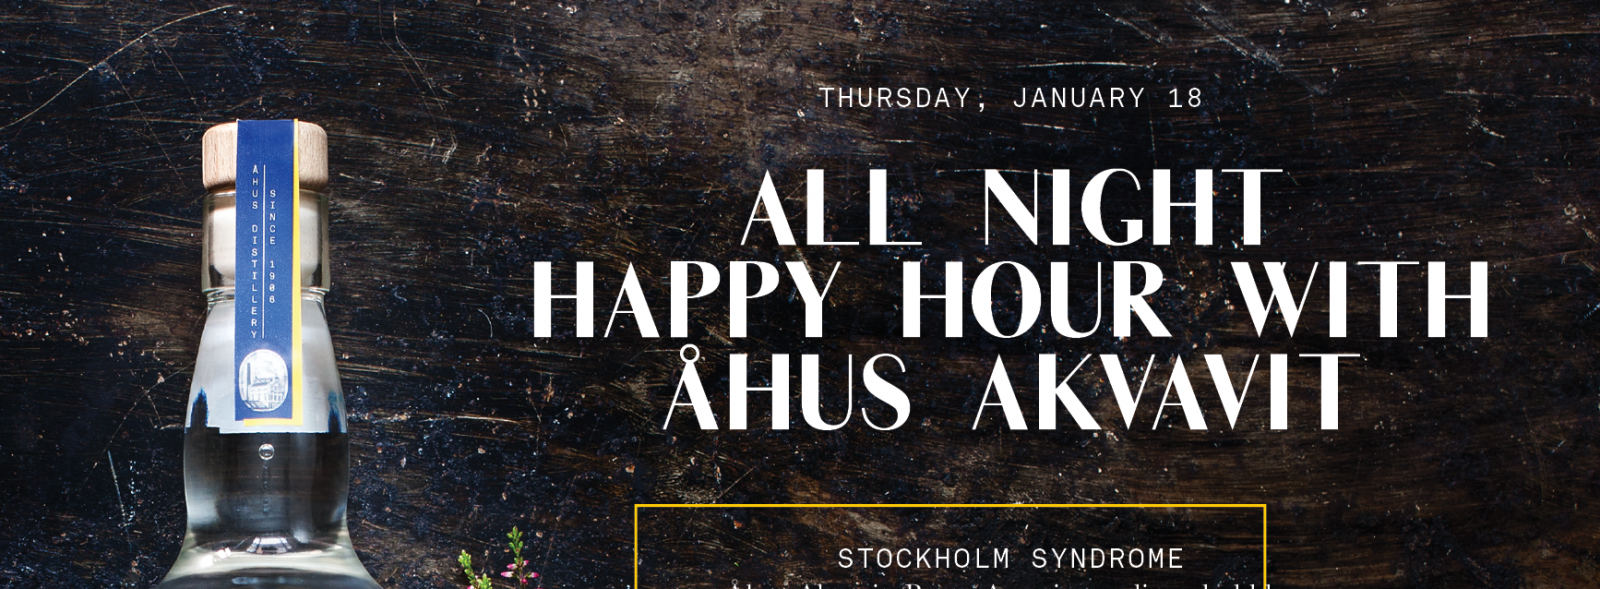 All Night Happy Hour with Åhus Akvavit | Swedes in the States